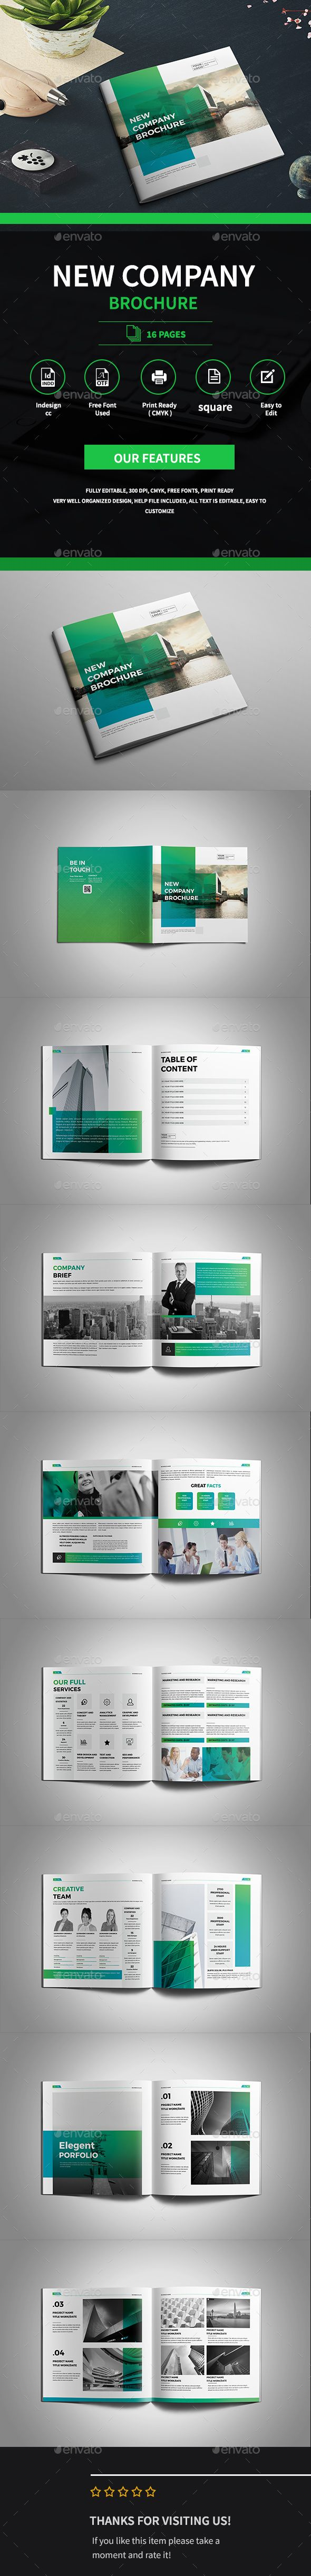 Square Company Profile Brochure - Corporate Brochures Download here : https://graphicriver.net/item/square-company-profile-brochure/19474826?s_rank=25&ref=Al-fatih